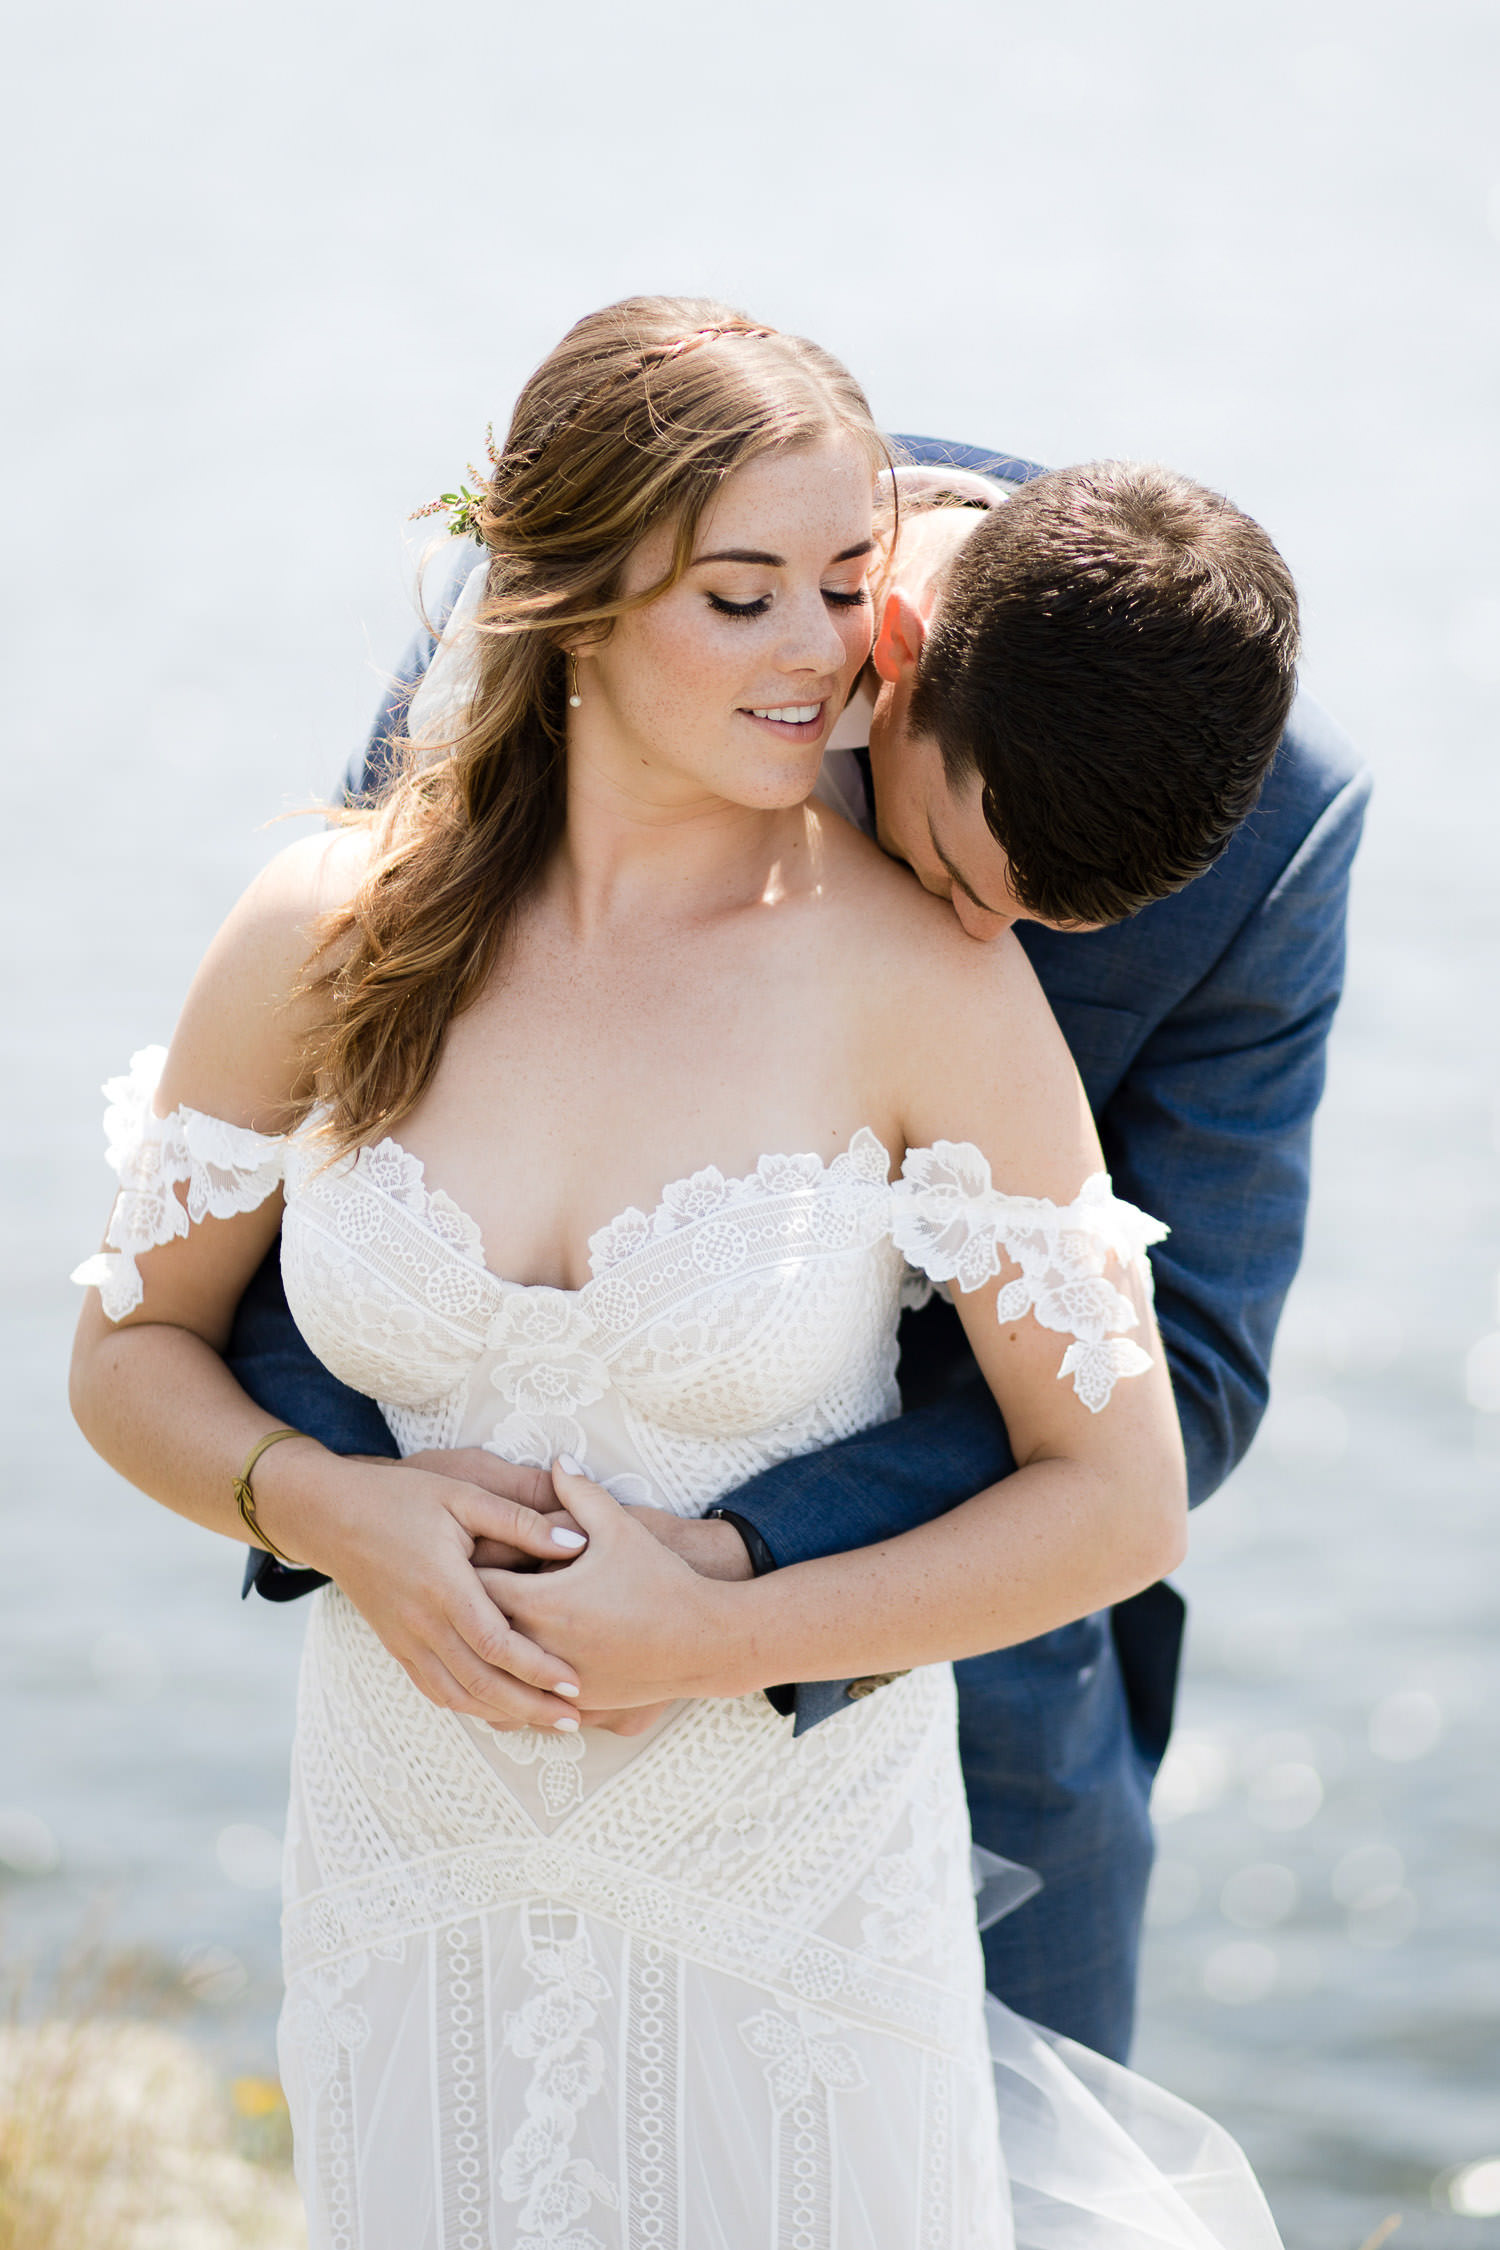 Seaside first look with Rue De Seine bride | Photo: Camilla Anchisi - Italian destination wedding photographer